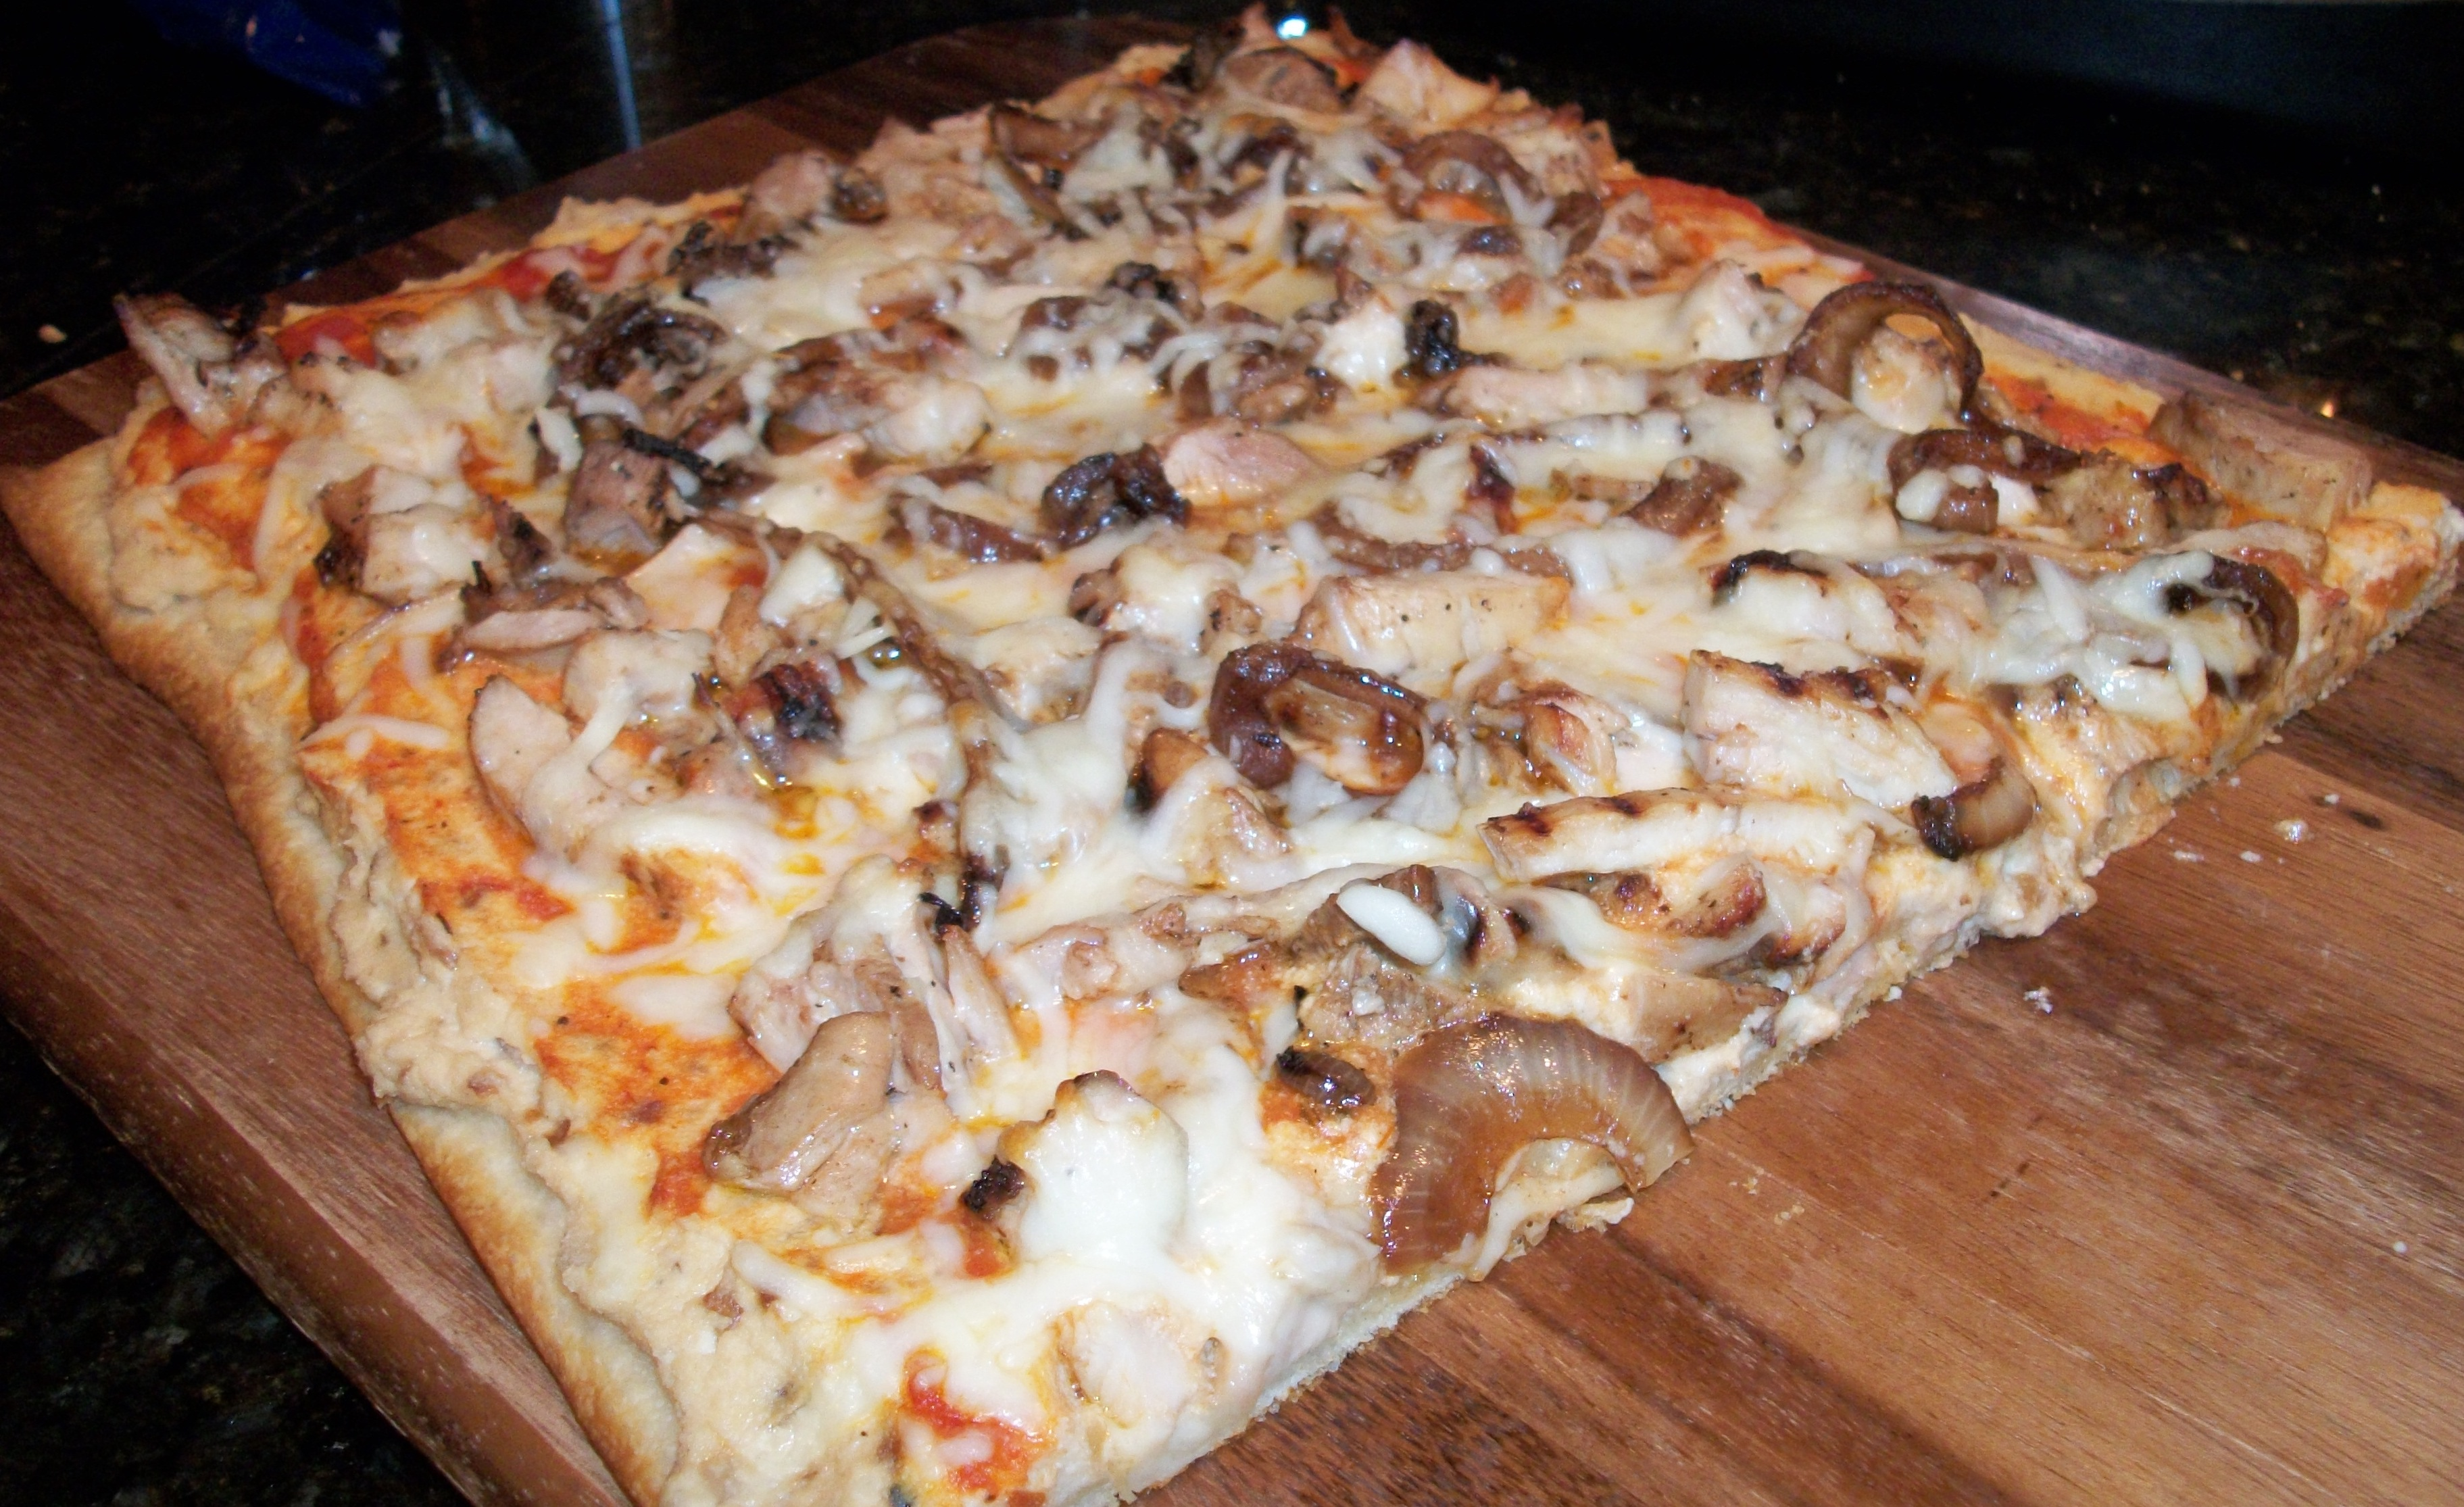 Balsamic Chicken Pizza with Ricotta Cheese and Sauteed Onions Fresh from the Oven